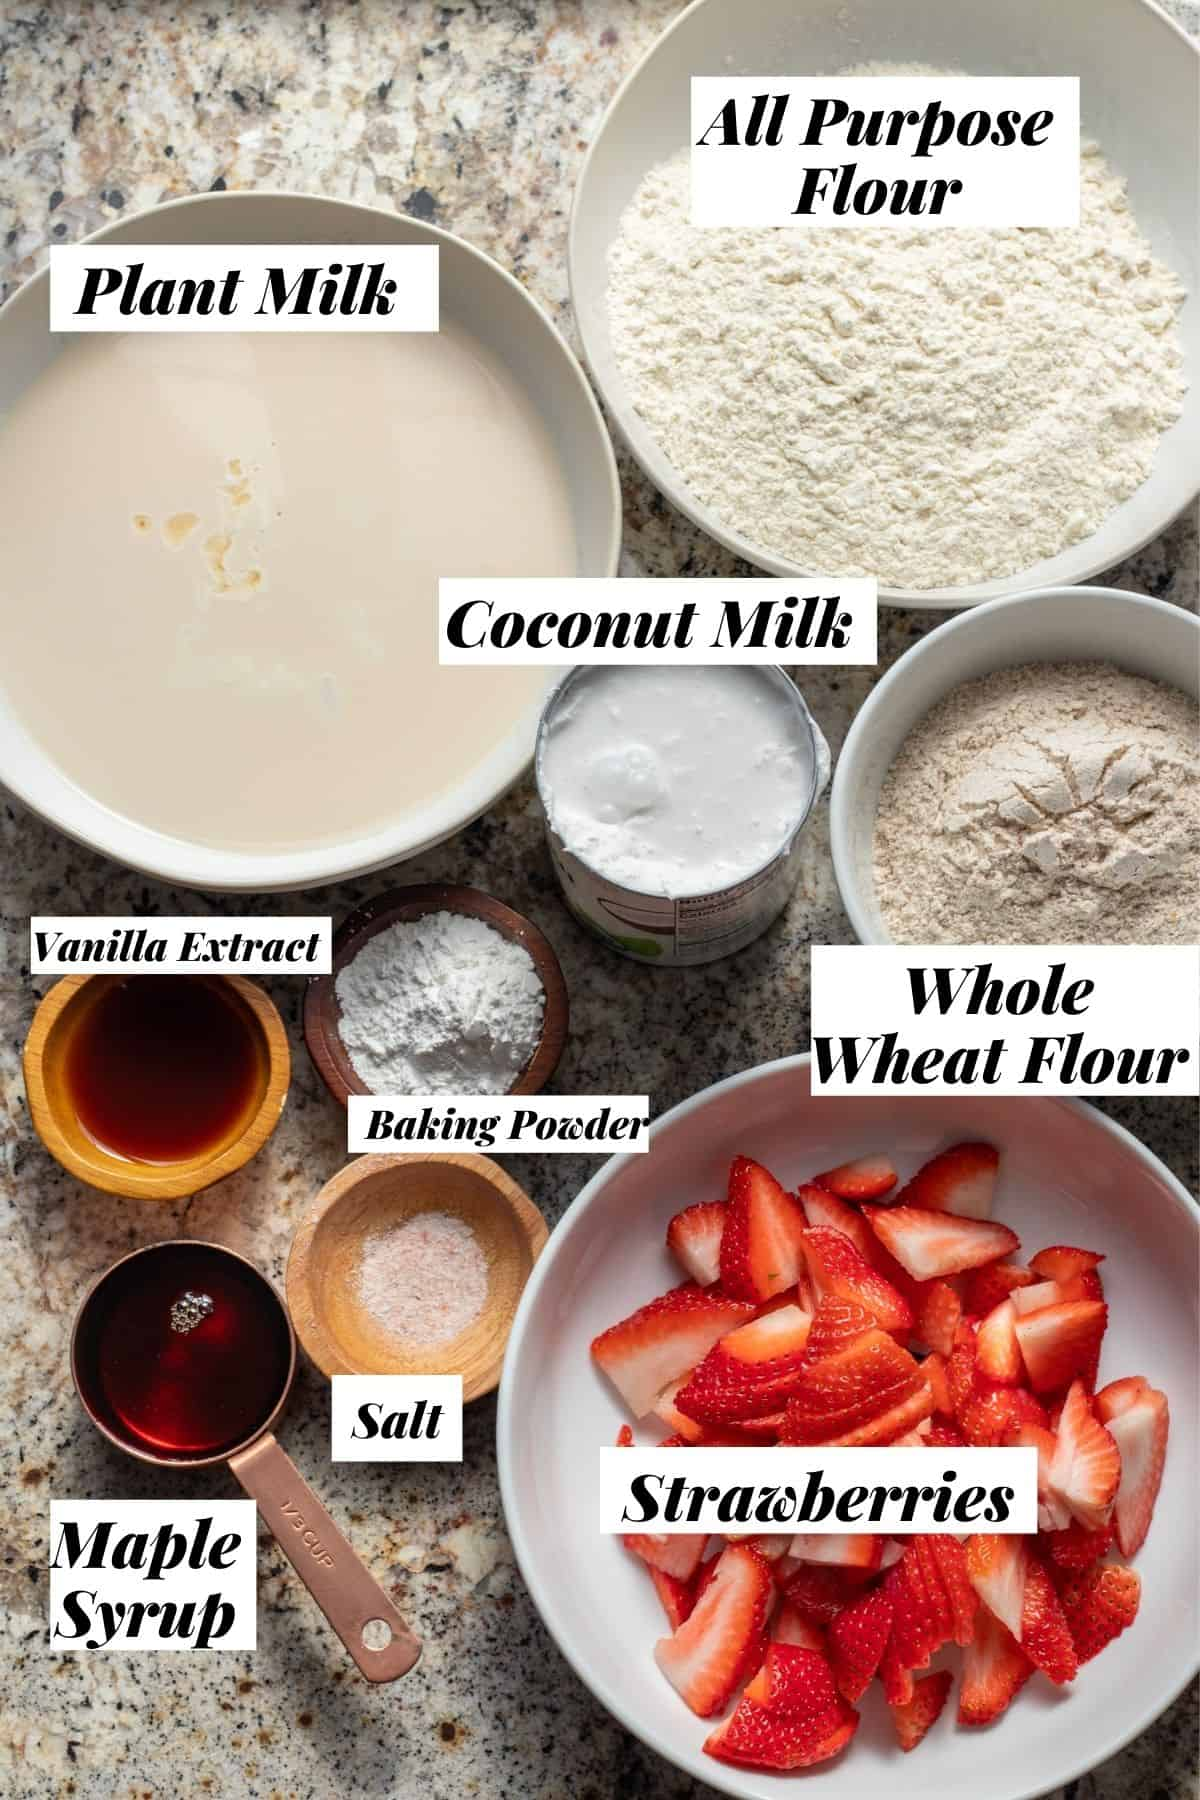 Ingredients needed for recipe with labels.